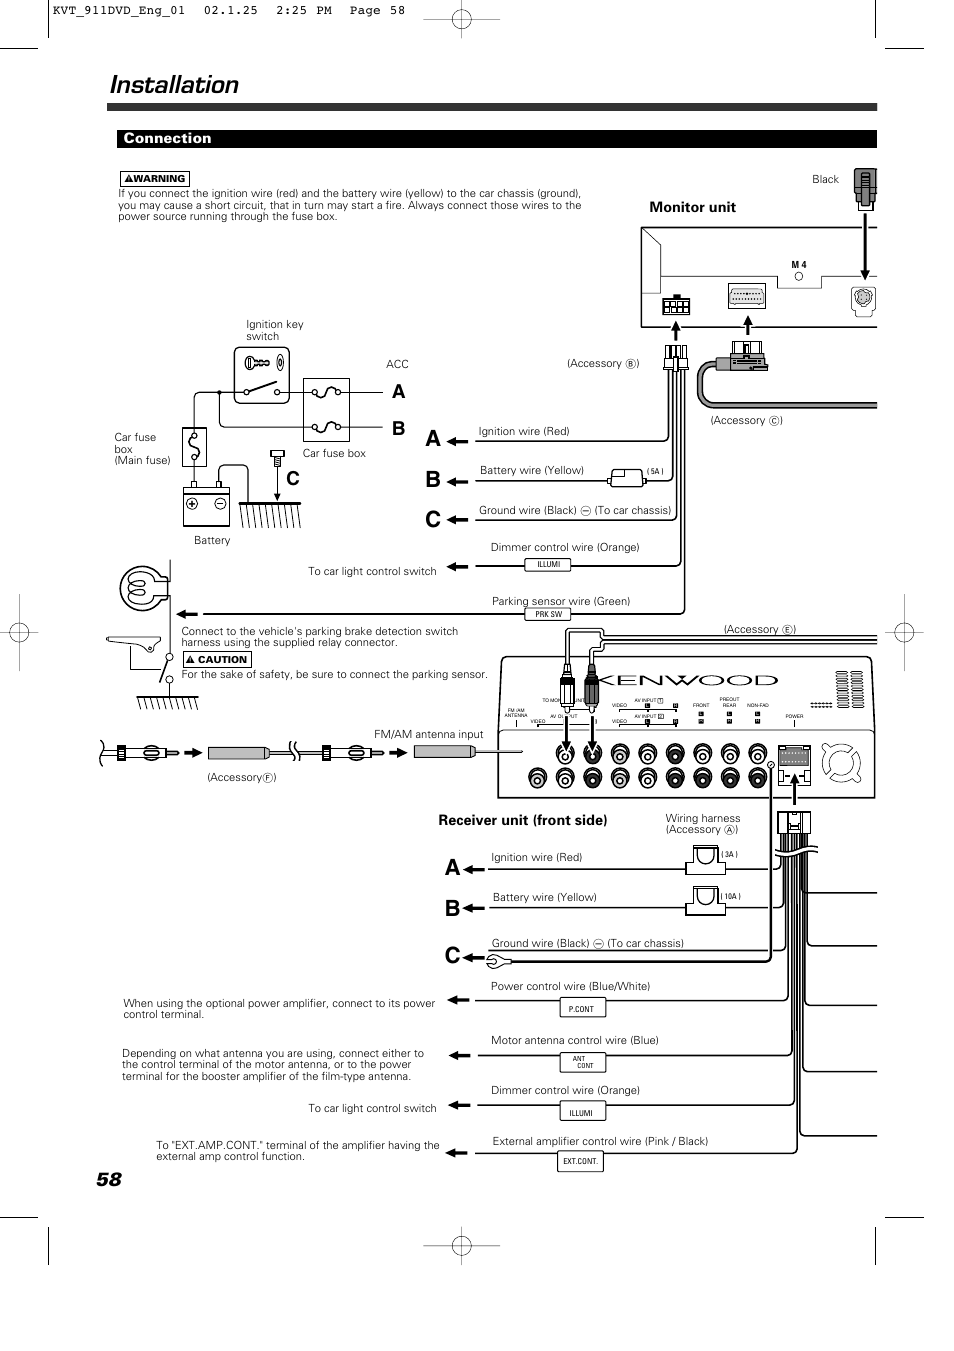 Kenwood Kdc-mp438u Wiring Diagram